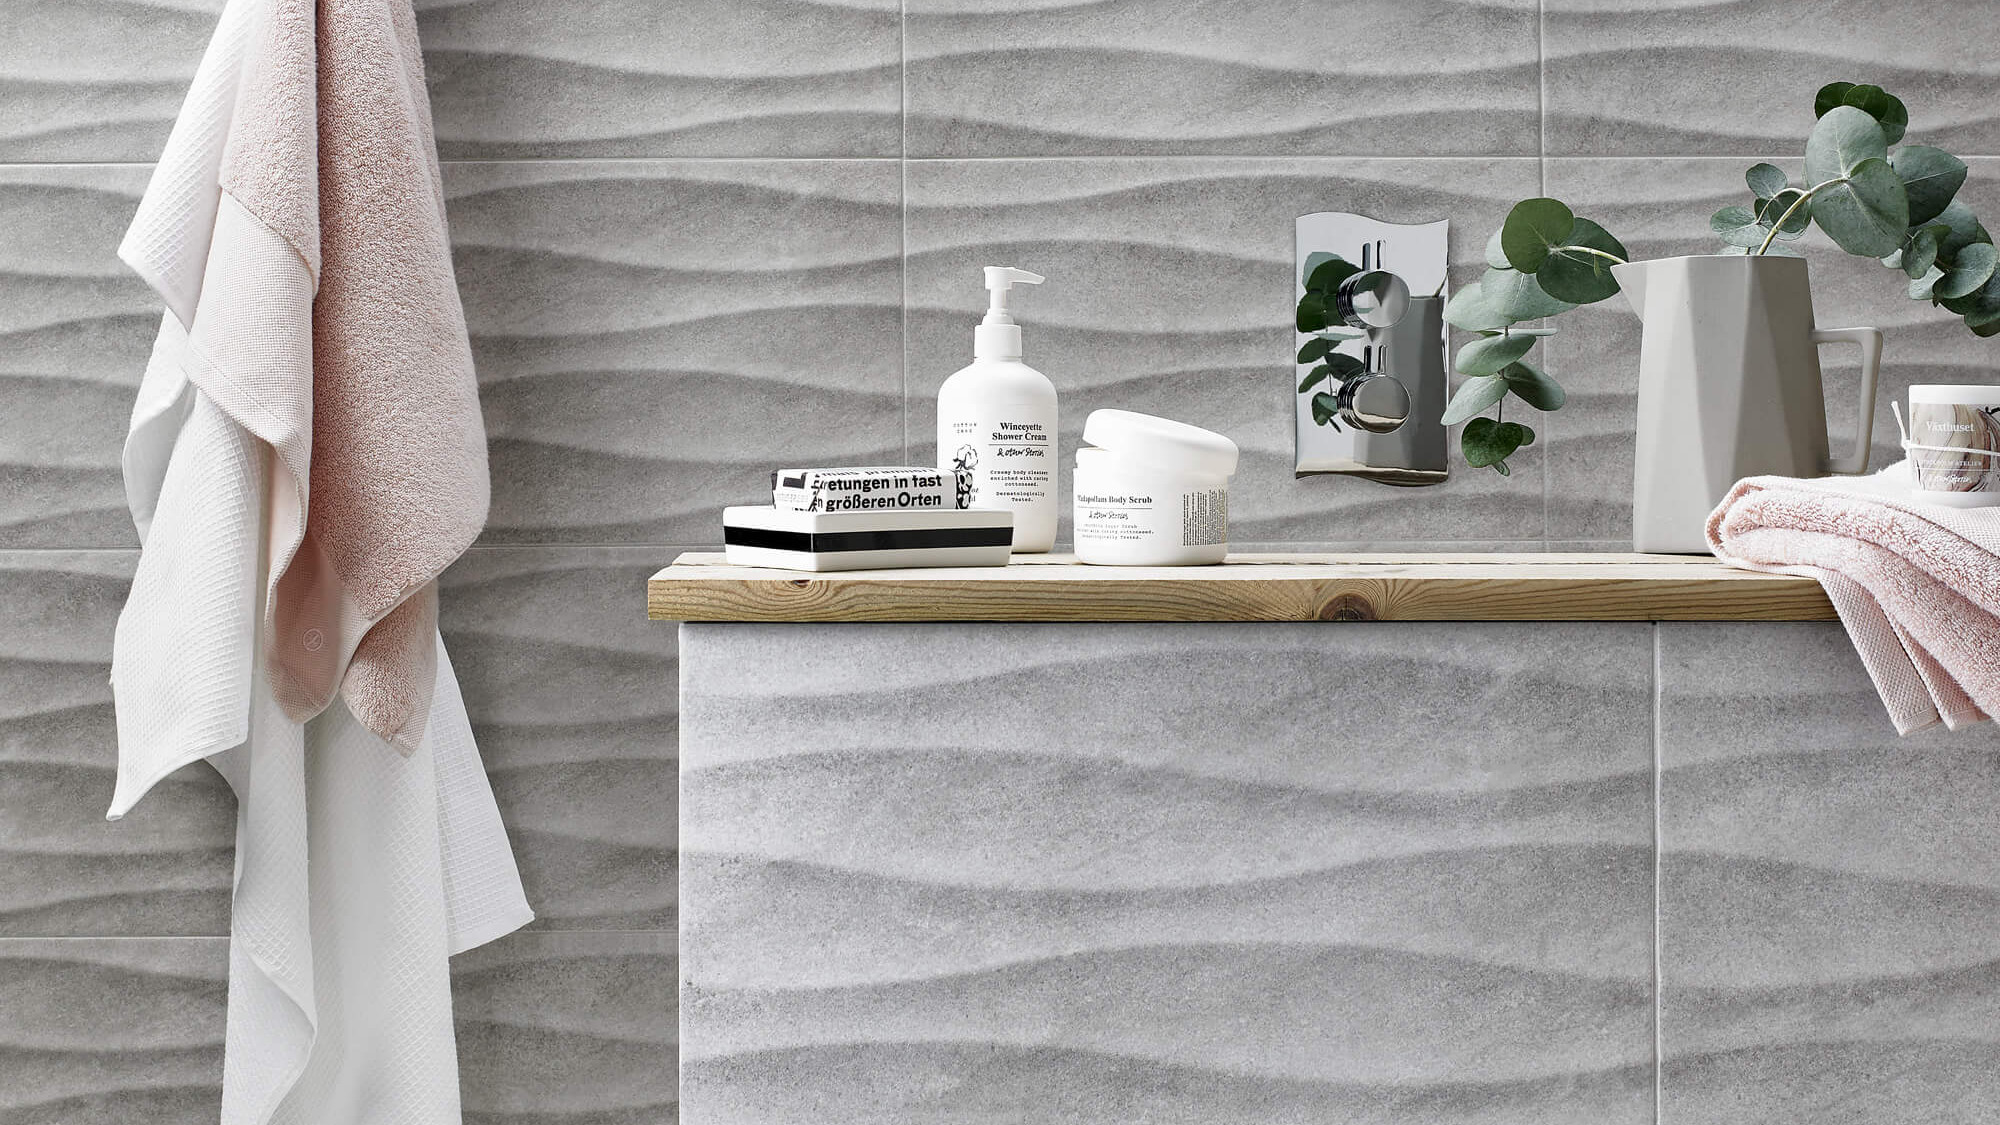 Hd tiles british ceramic tile didnt think you could create an amazing stone wood or graphic look using tiles you can hd tiles are created using the very latest in high definition dailygadgetfo Choice Image